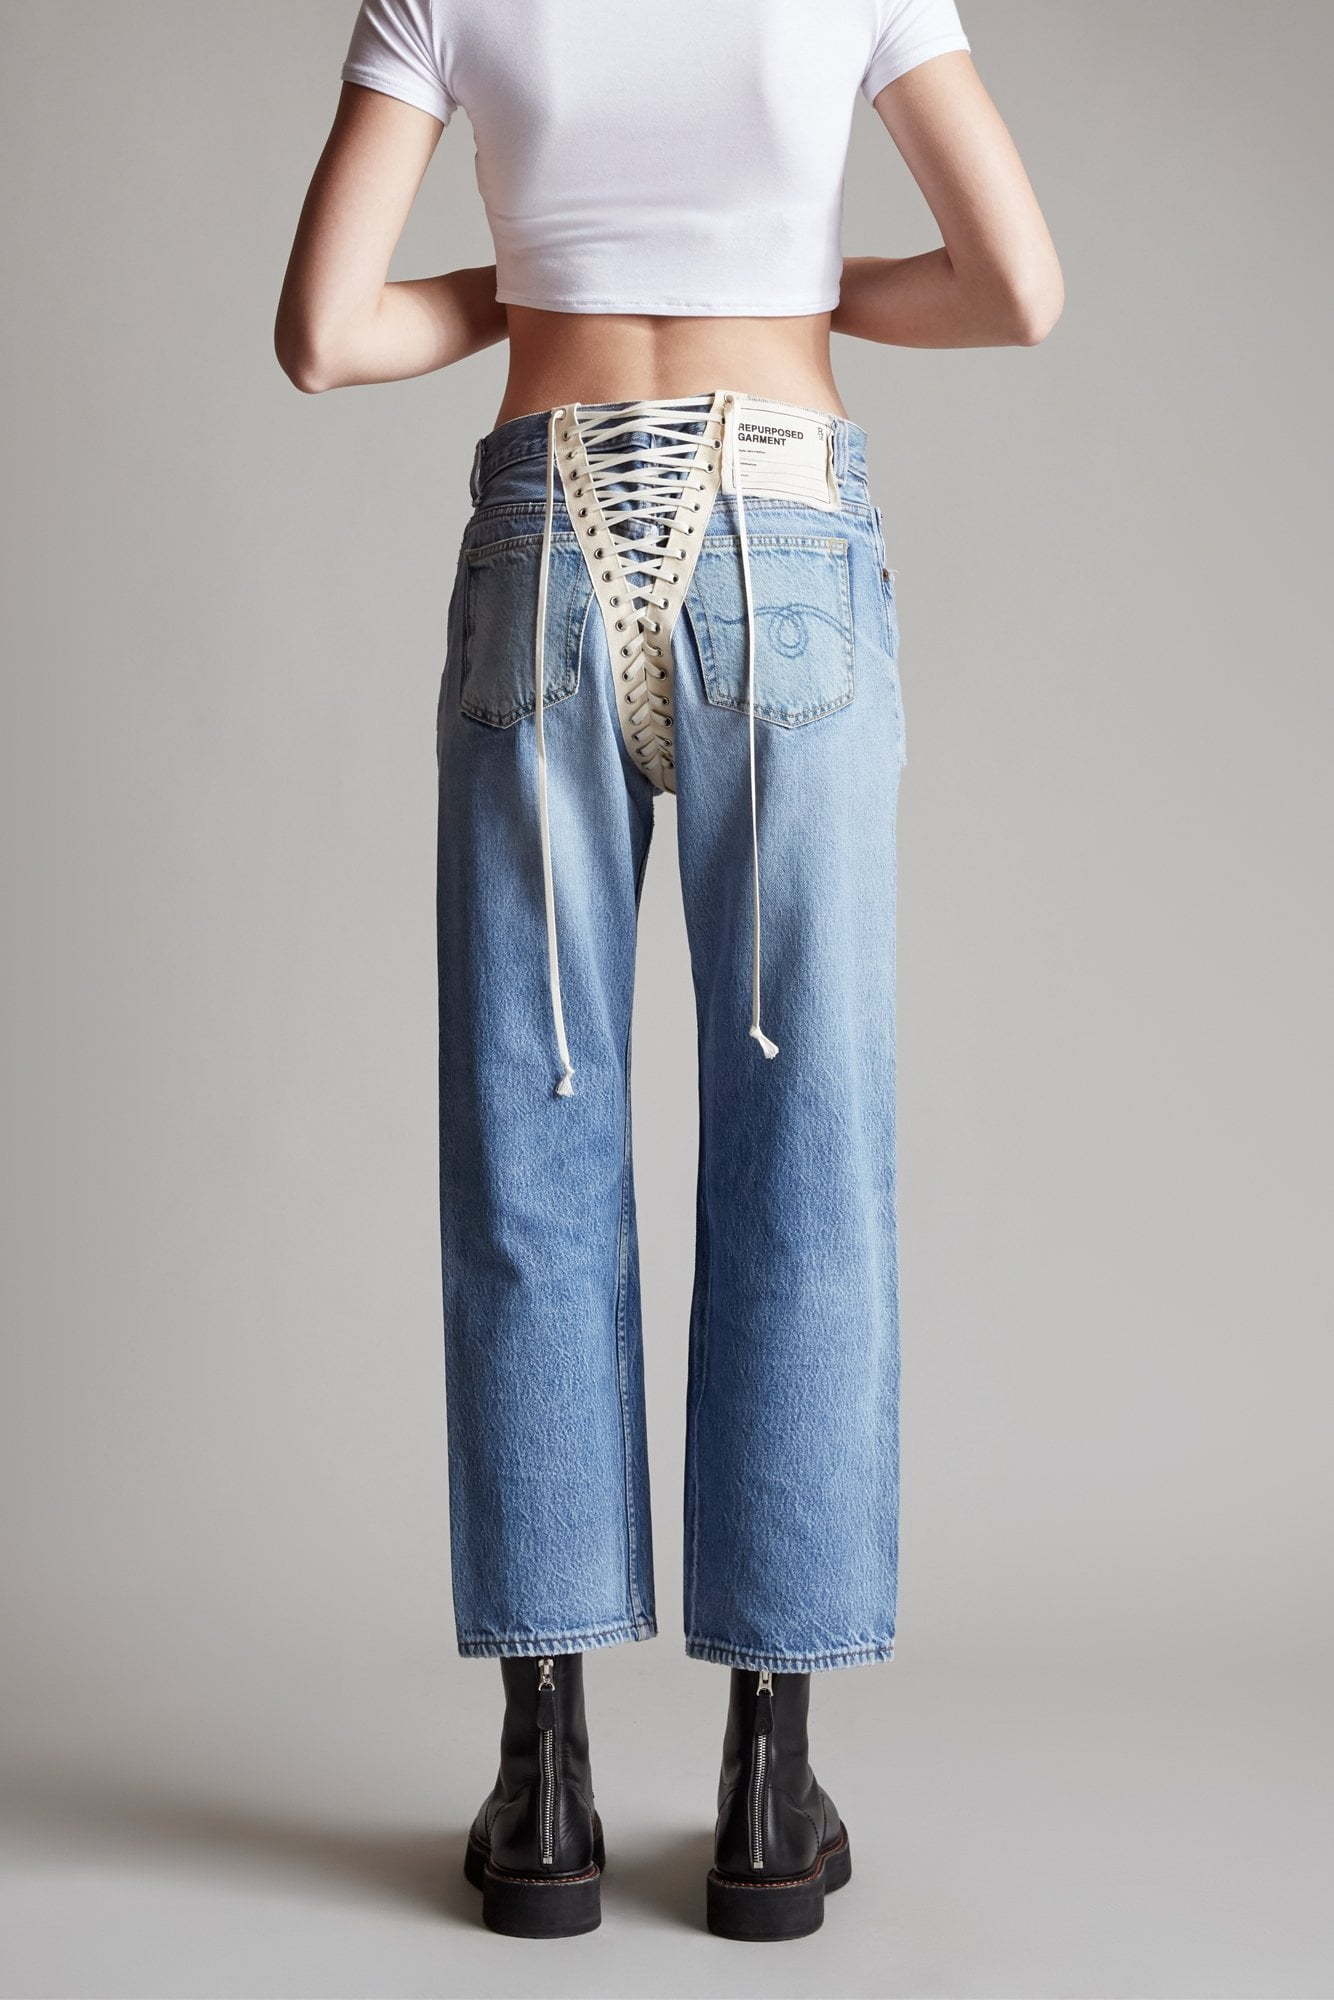 Refurbished Back Lace Up Jean - Vintage Indigo